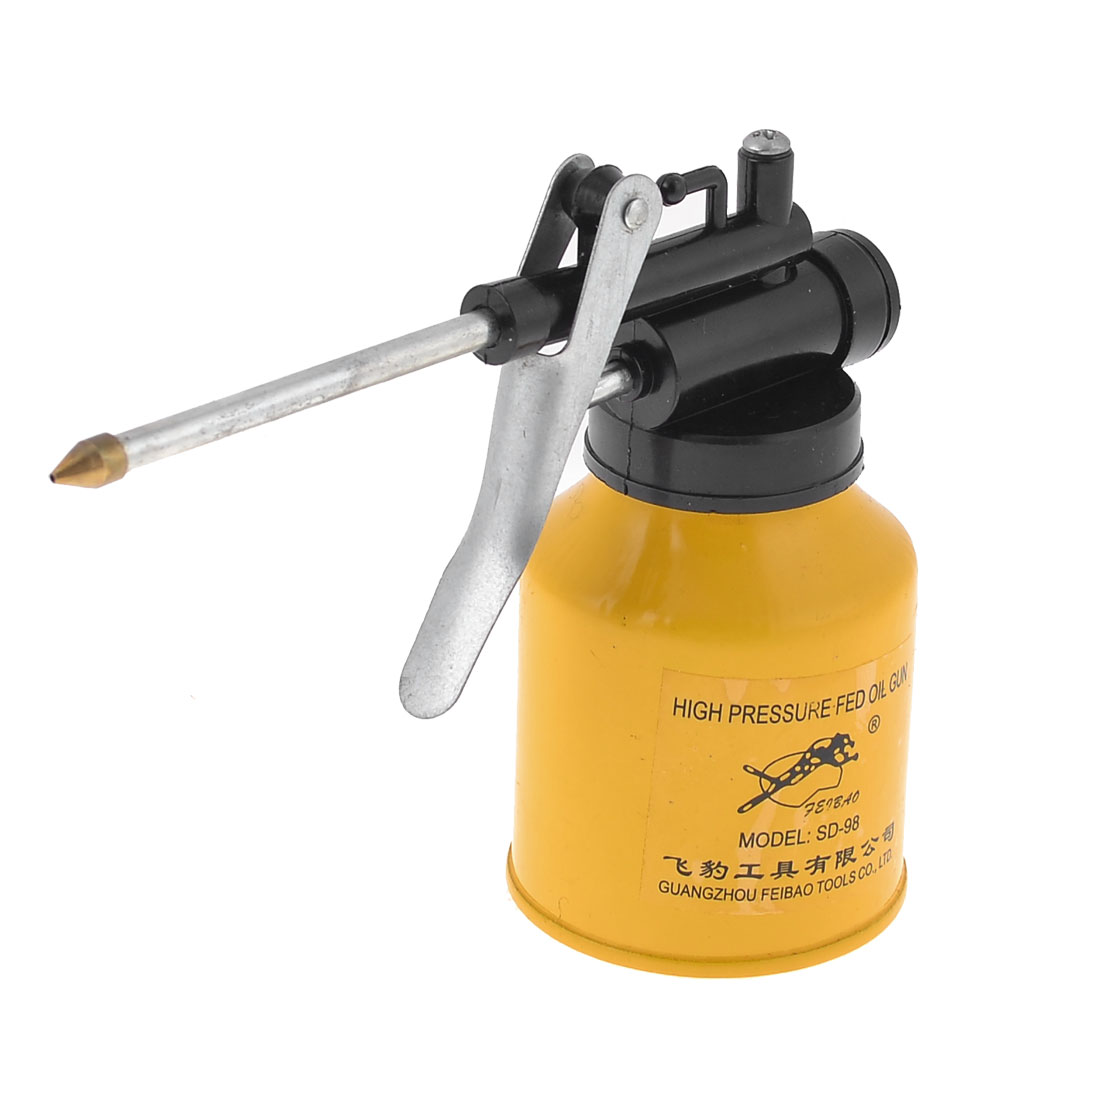 "3.3"" Long Nozzle Metallic Bottle High Pressure Feed Oil Gun Dark Yellow"